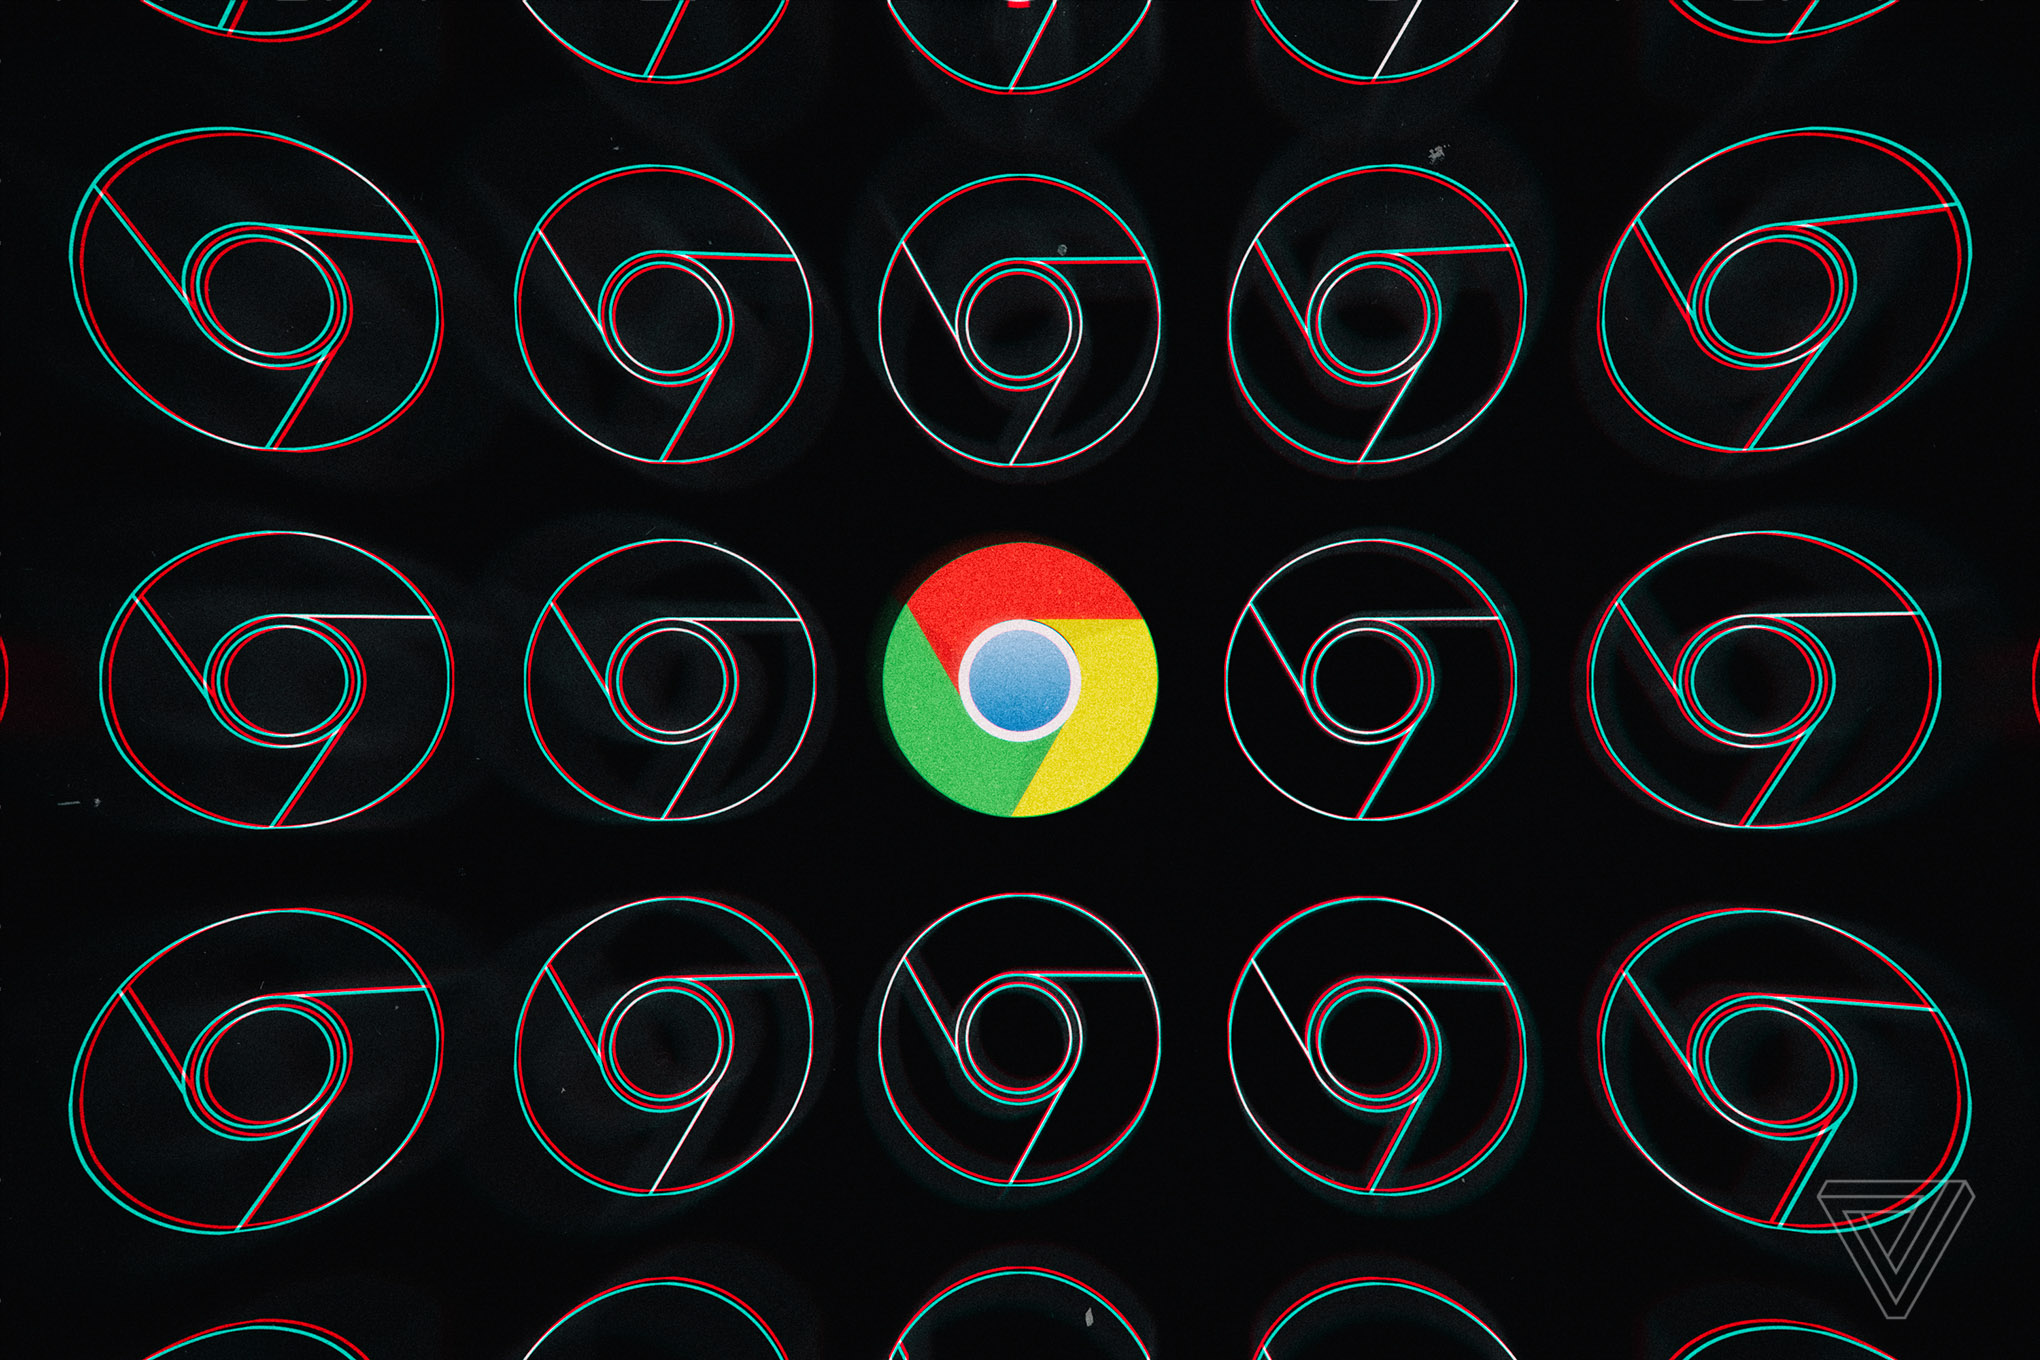 Chrome OS is getting full-fledged Linux apps